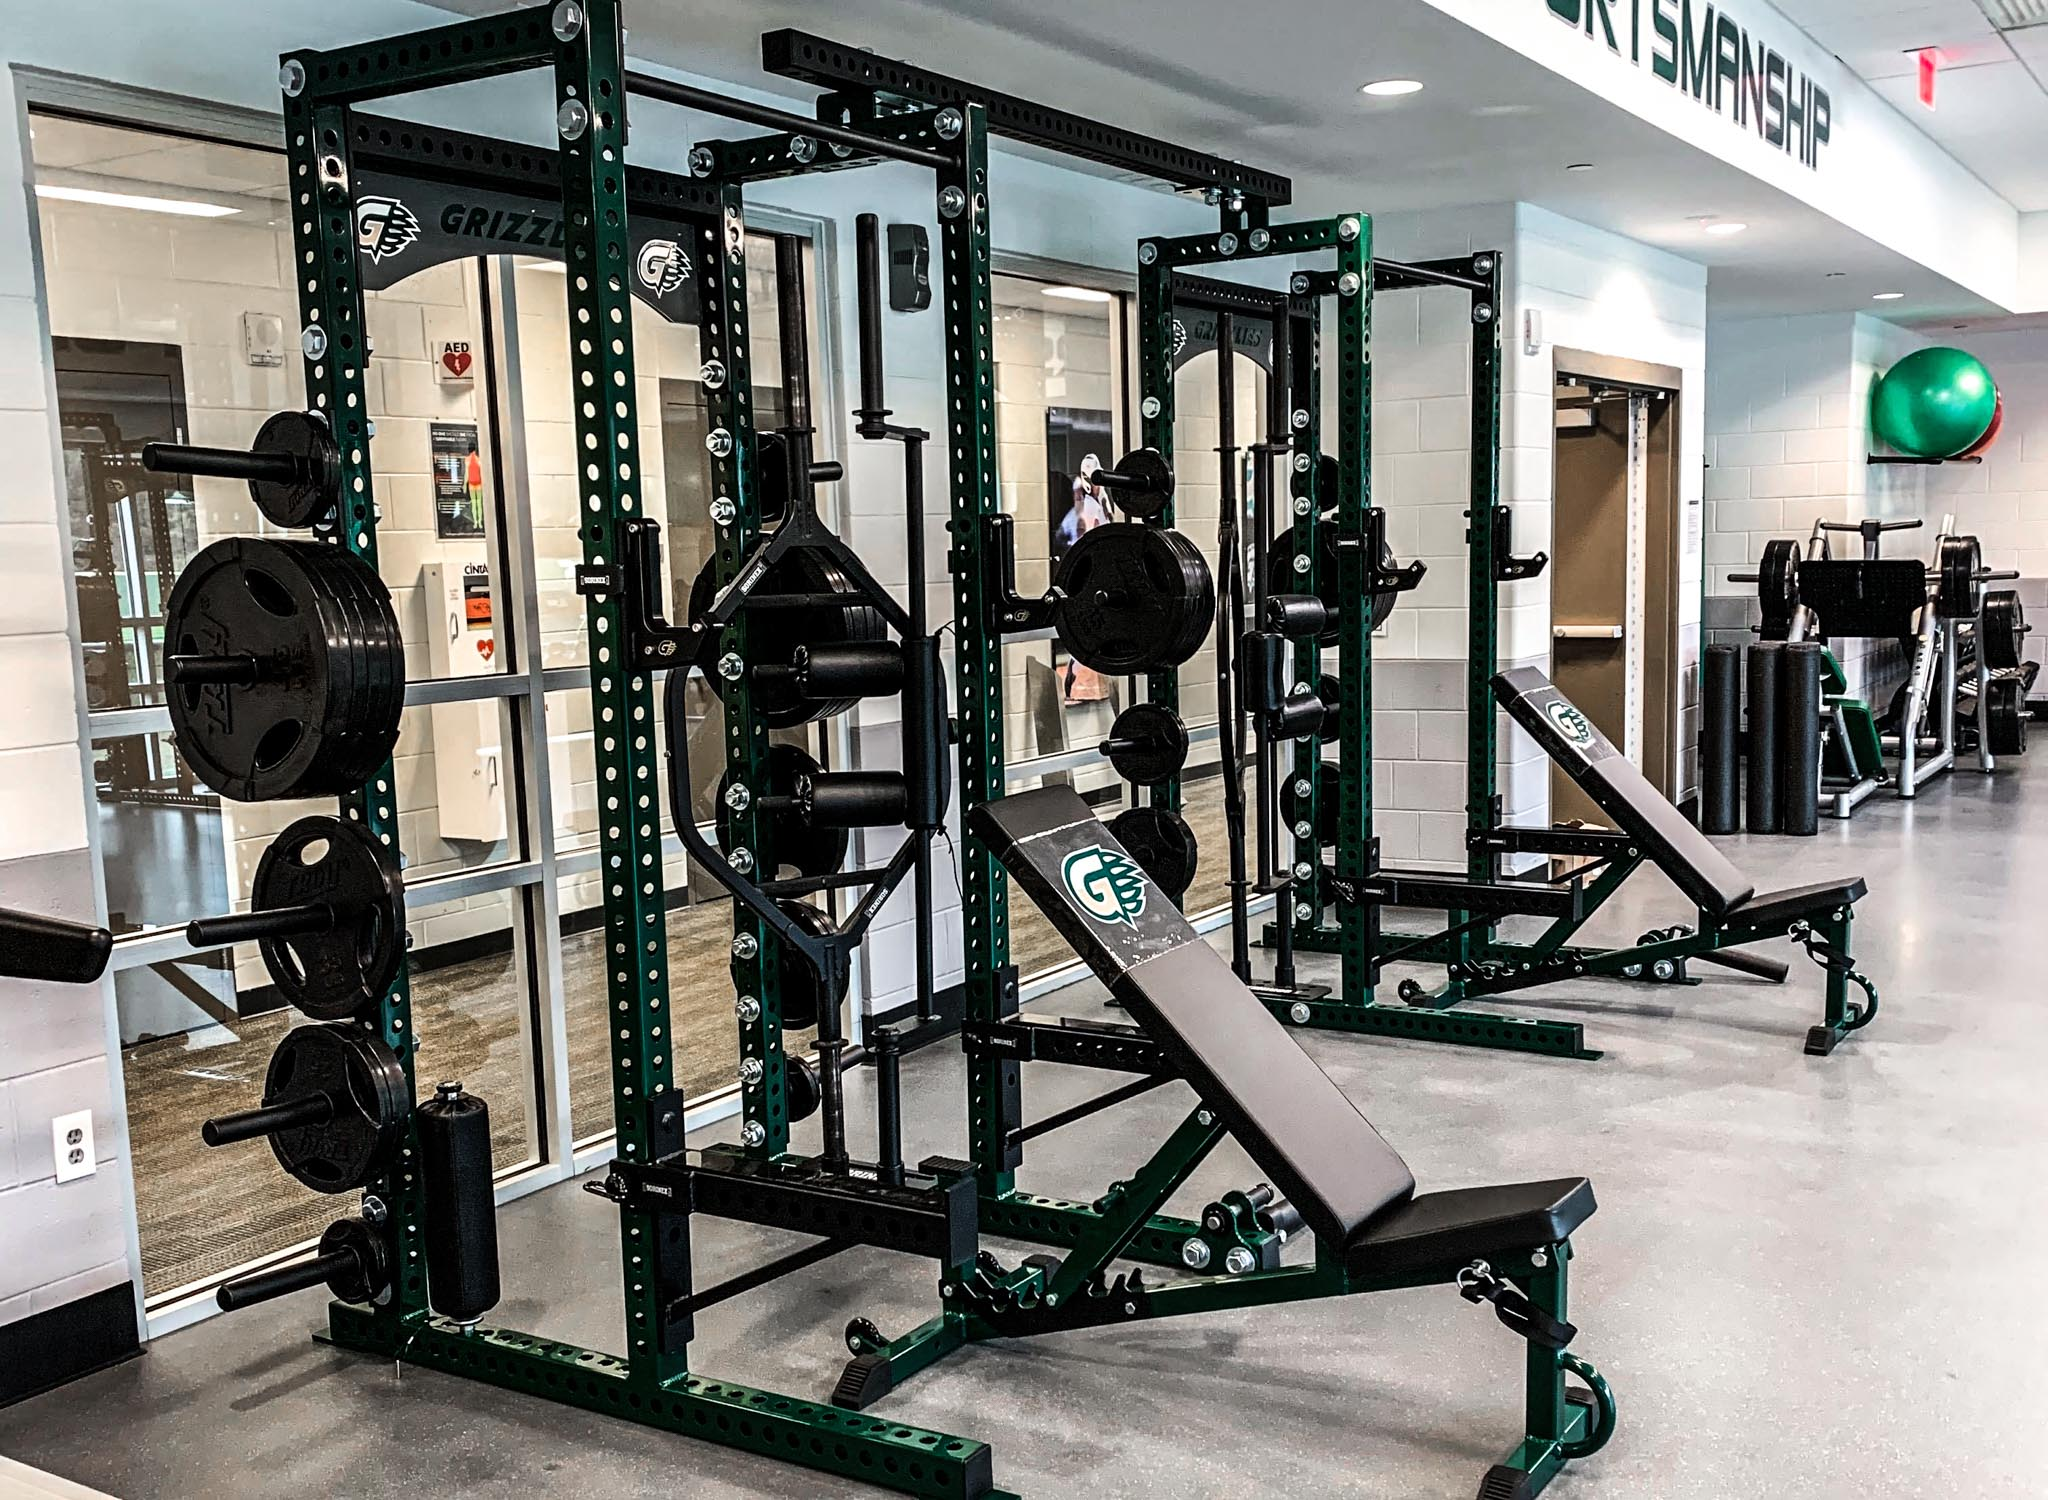 Georgia Gwinnett College Weight Room